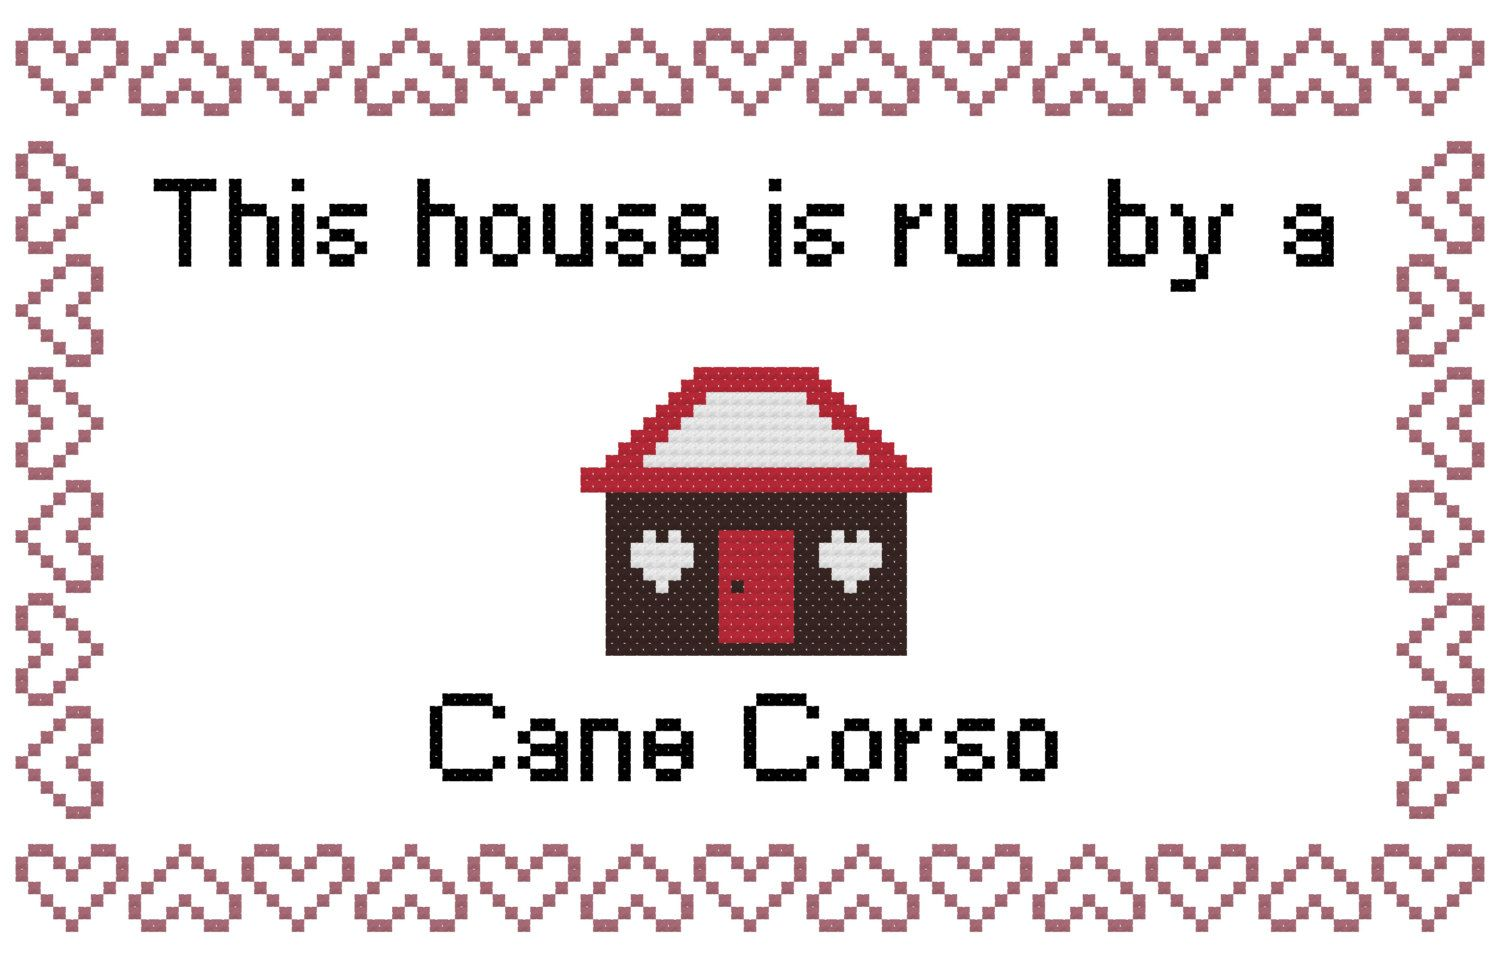 Cane corso this house is run by a cane corso cross stitch pattern cane corso this house is run by a cane corso cross stitch pattern and tutorial geenschuldenfo Images